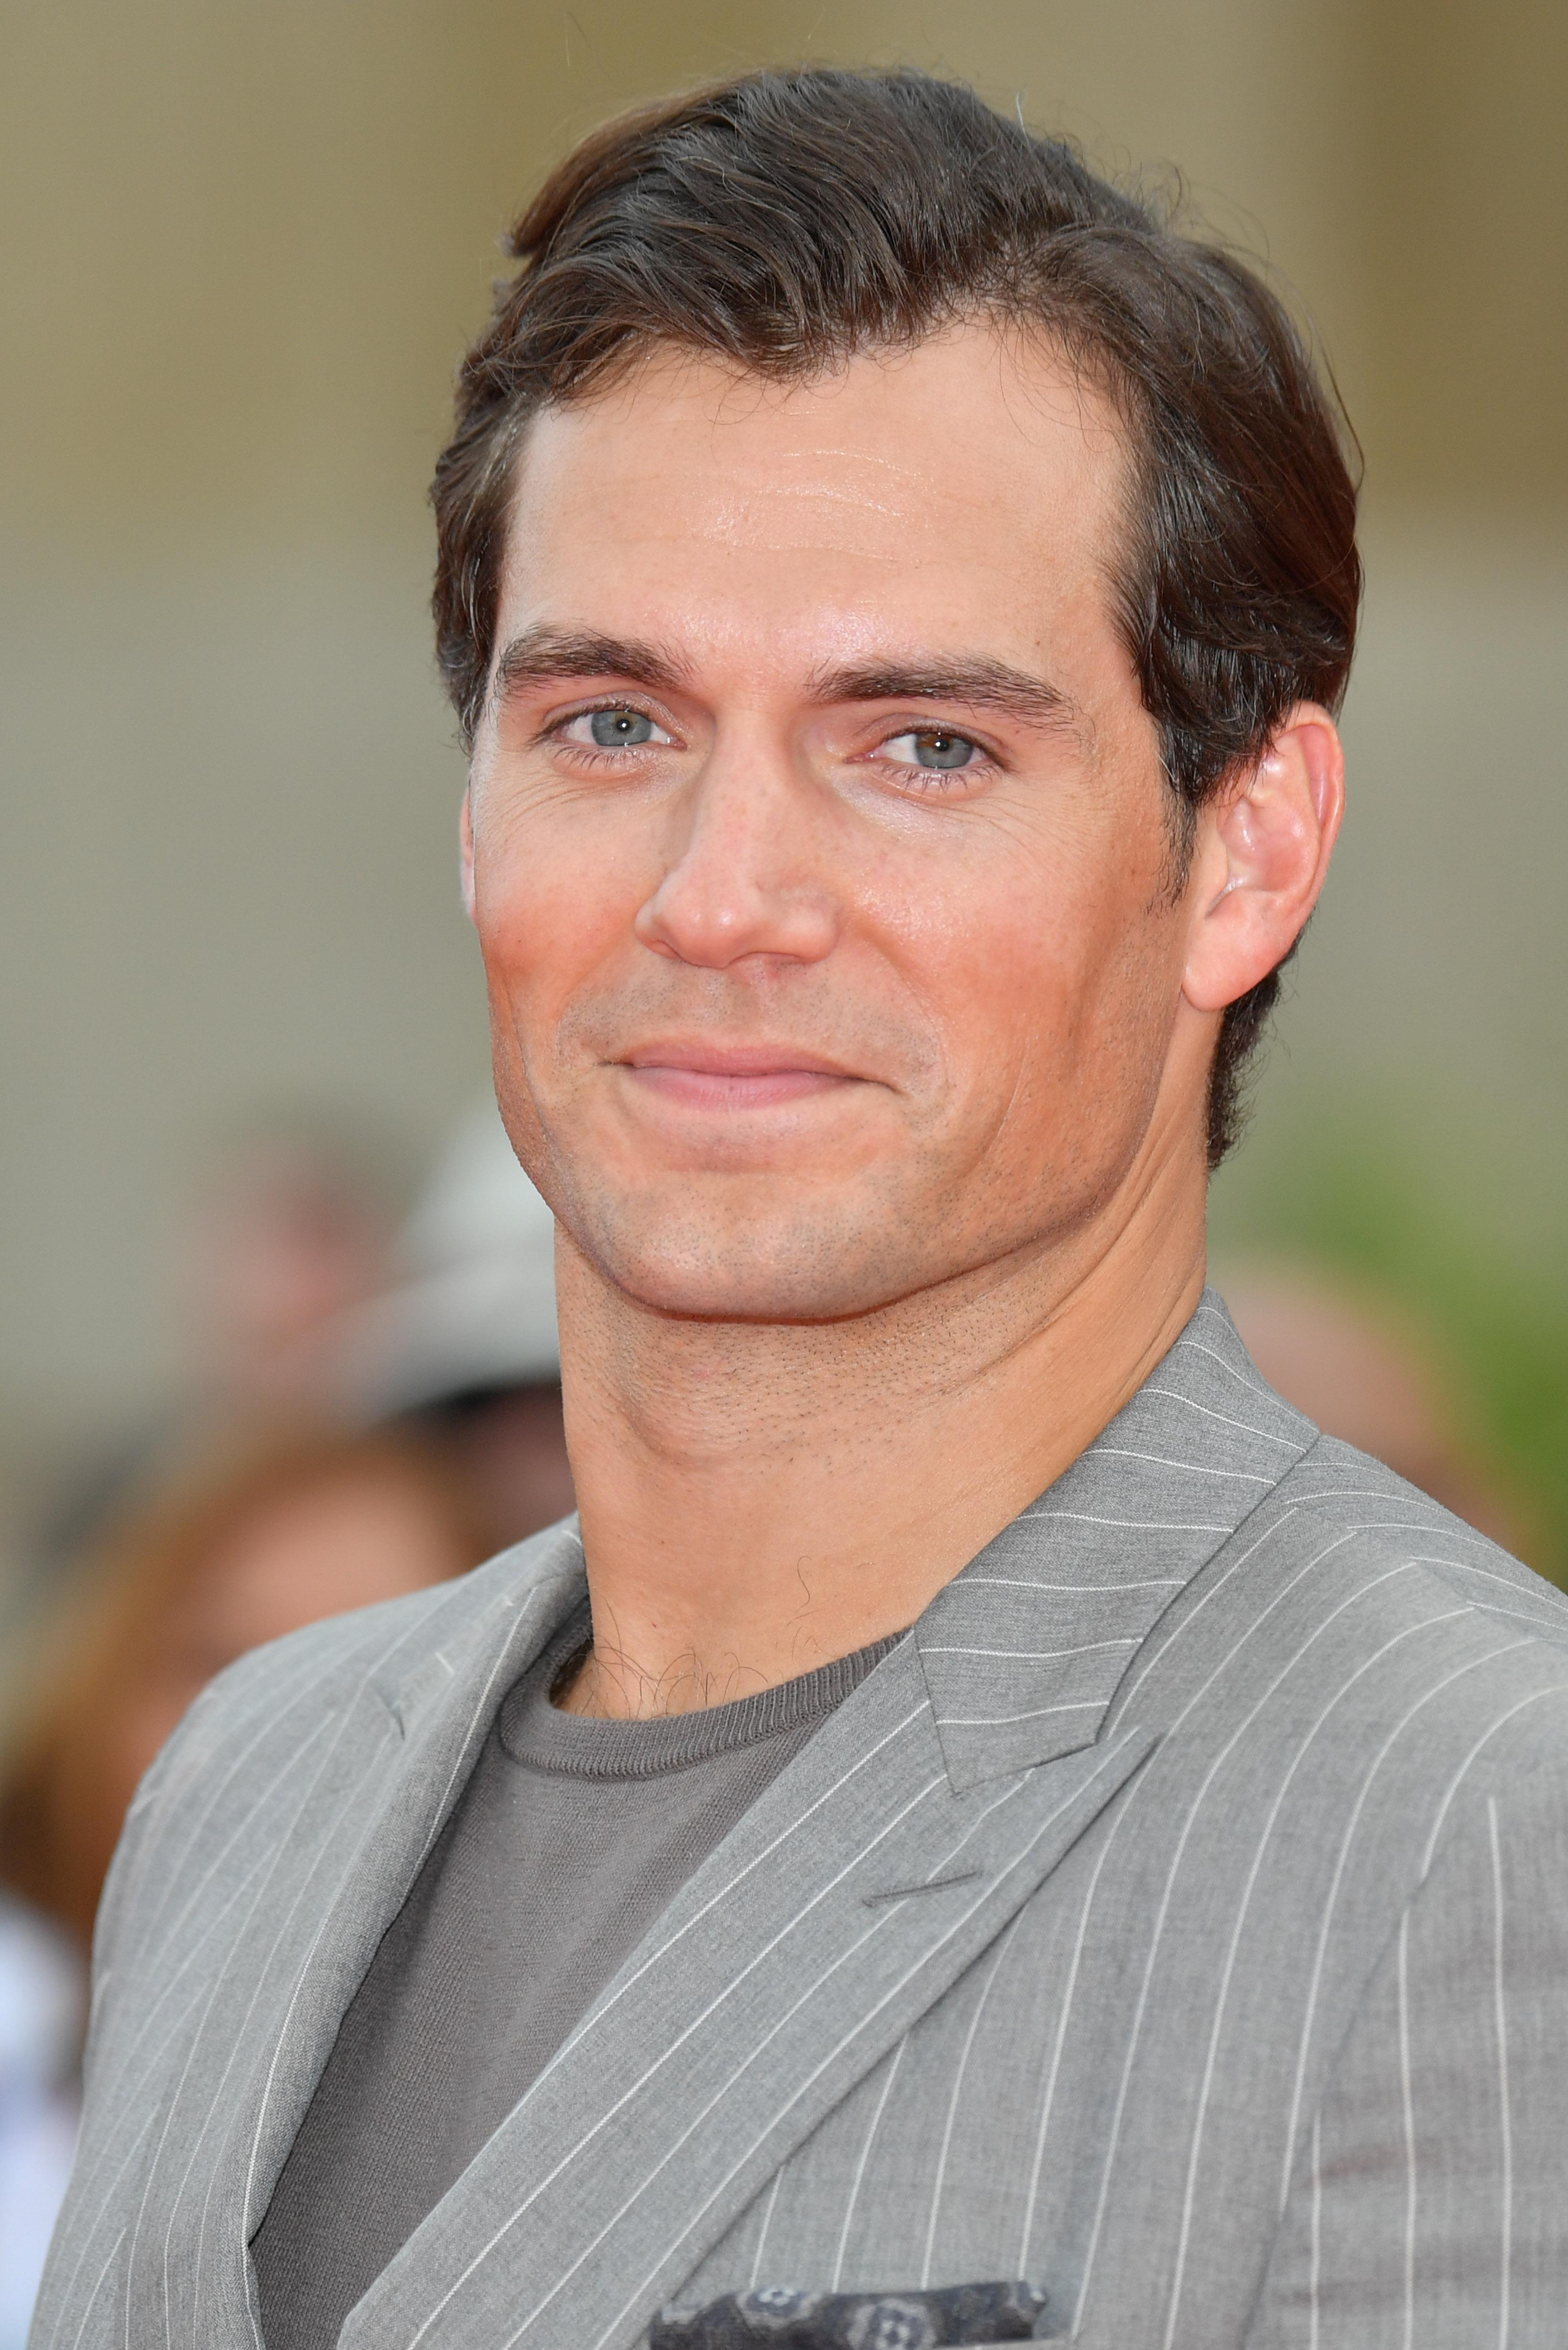 Henry Cavill Scared To Date Post MeToo